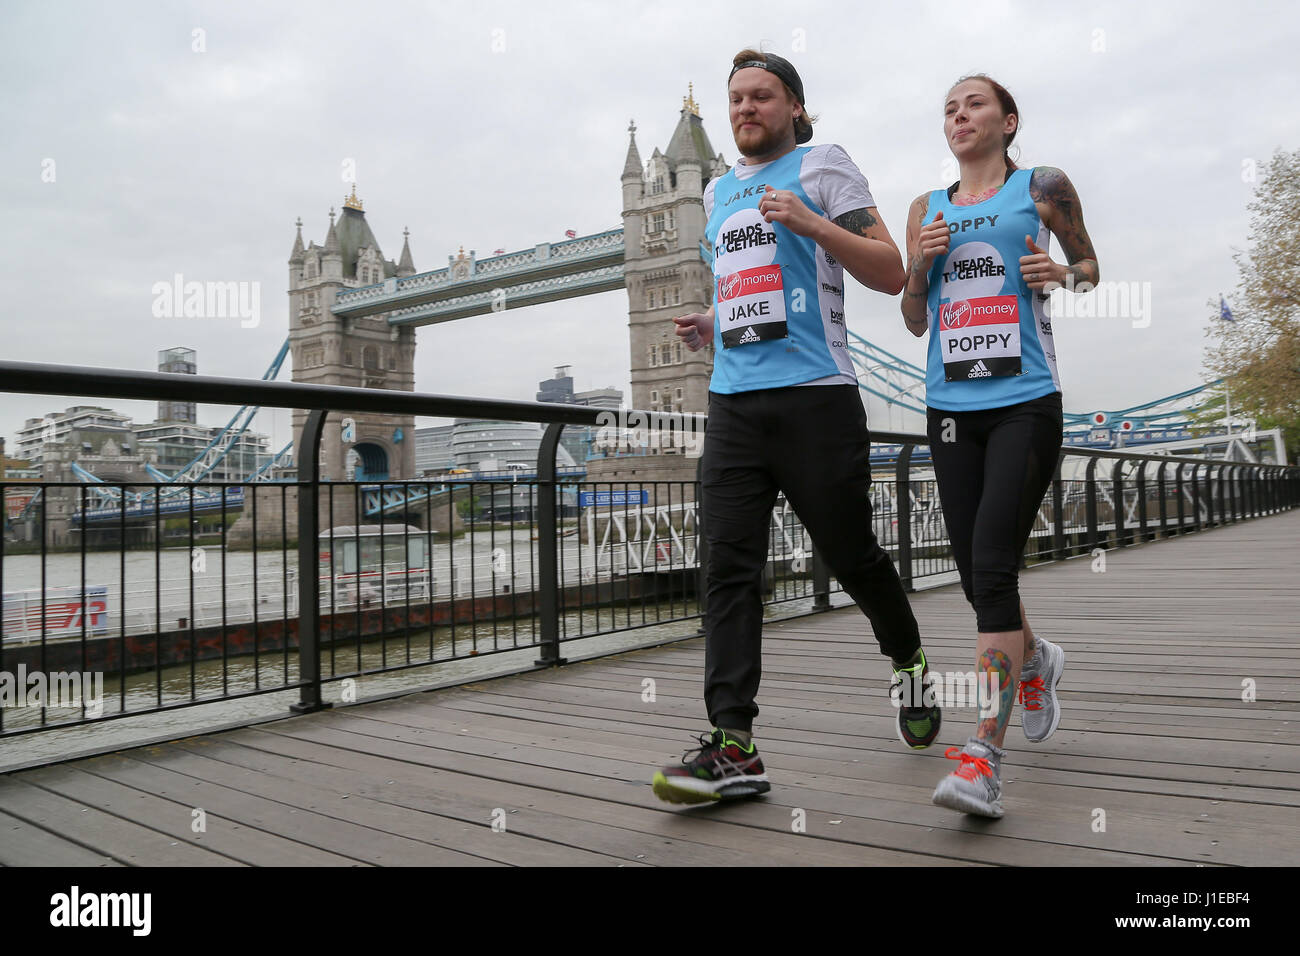 London, UK. 21st April, 2017. Jake and Poppy.  The 2017 Virgin Money London Marathon has been celebrating every Stock Photo